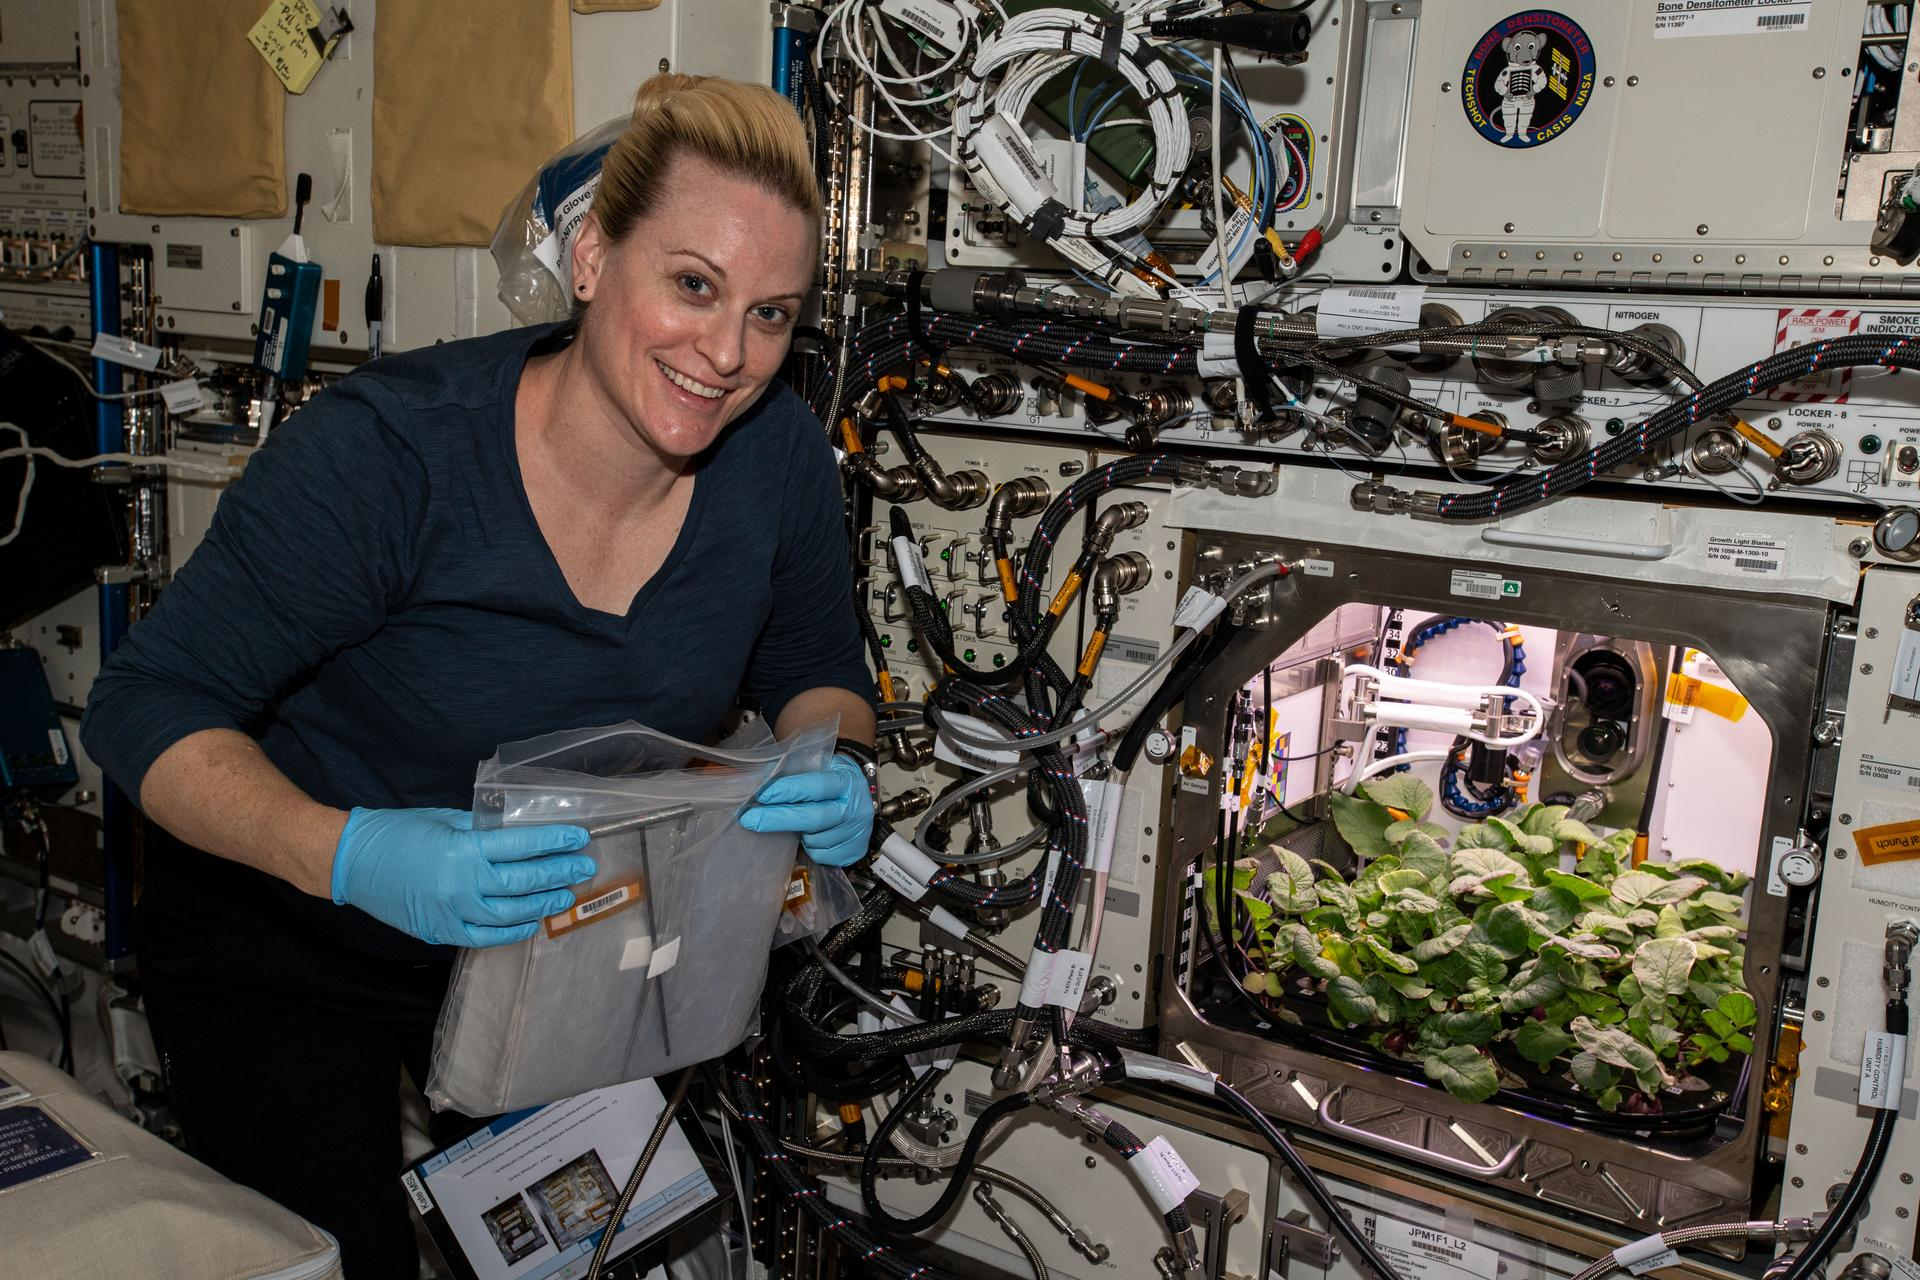 First radishes grown in space